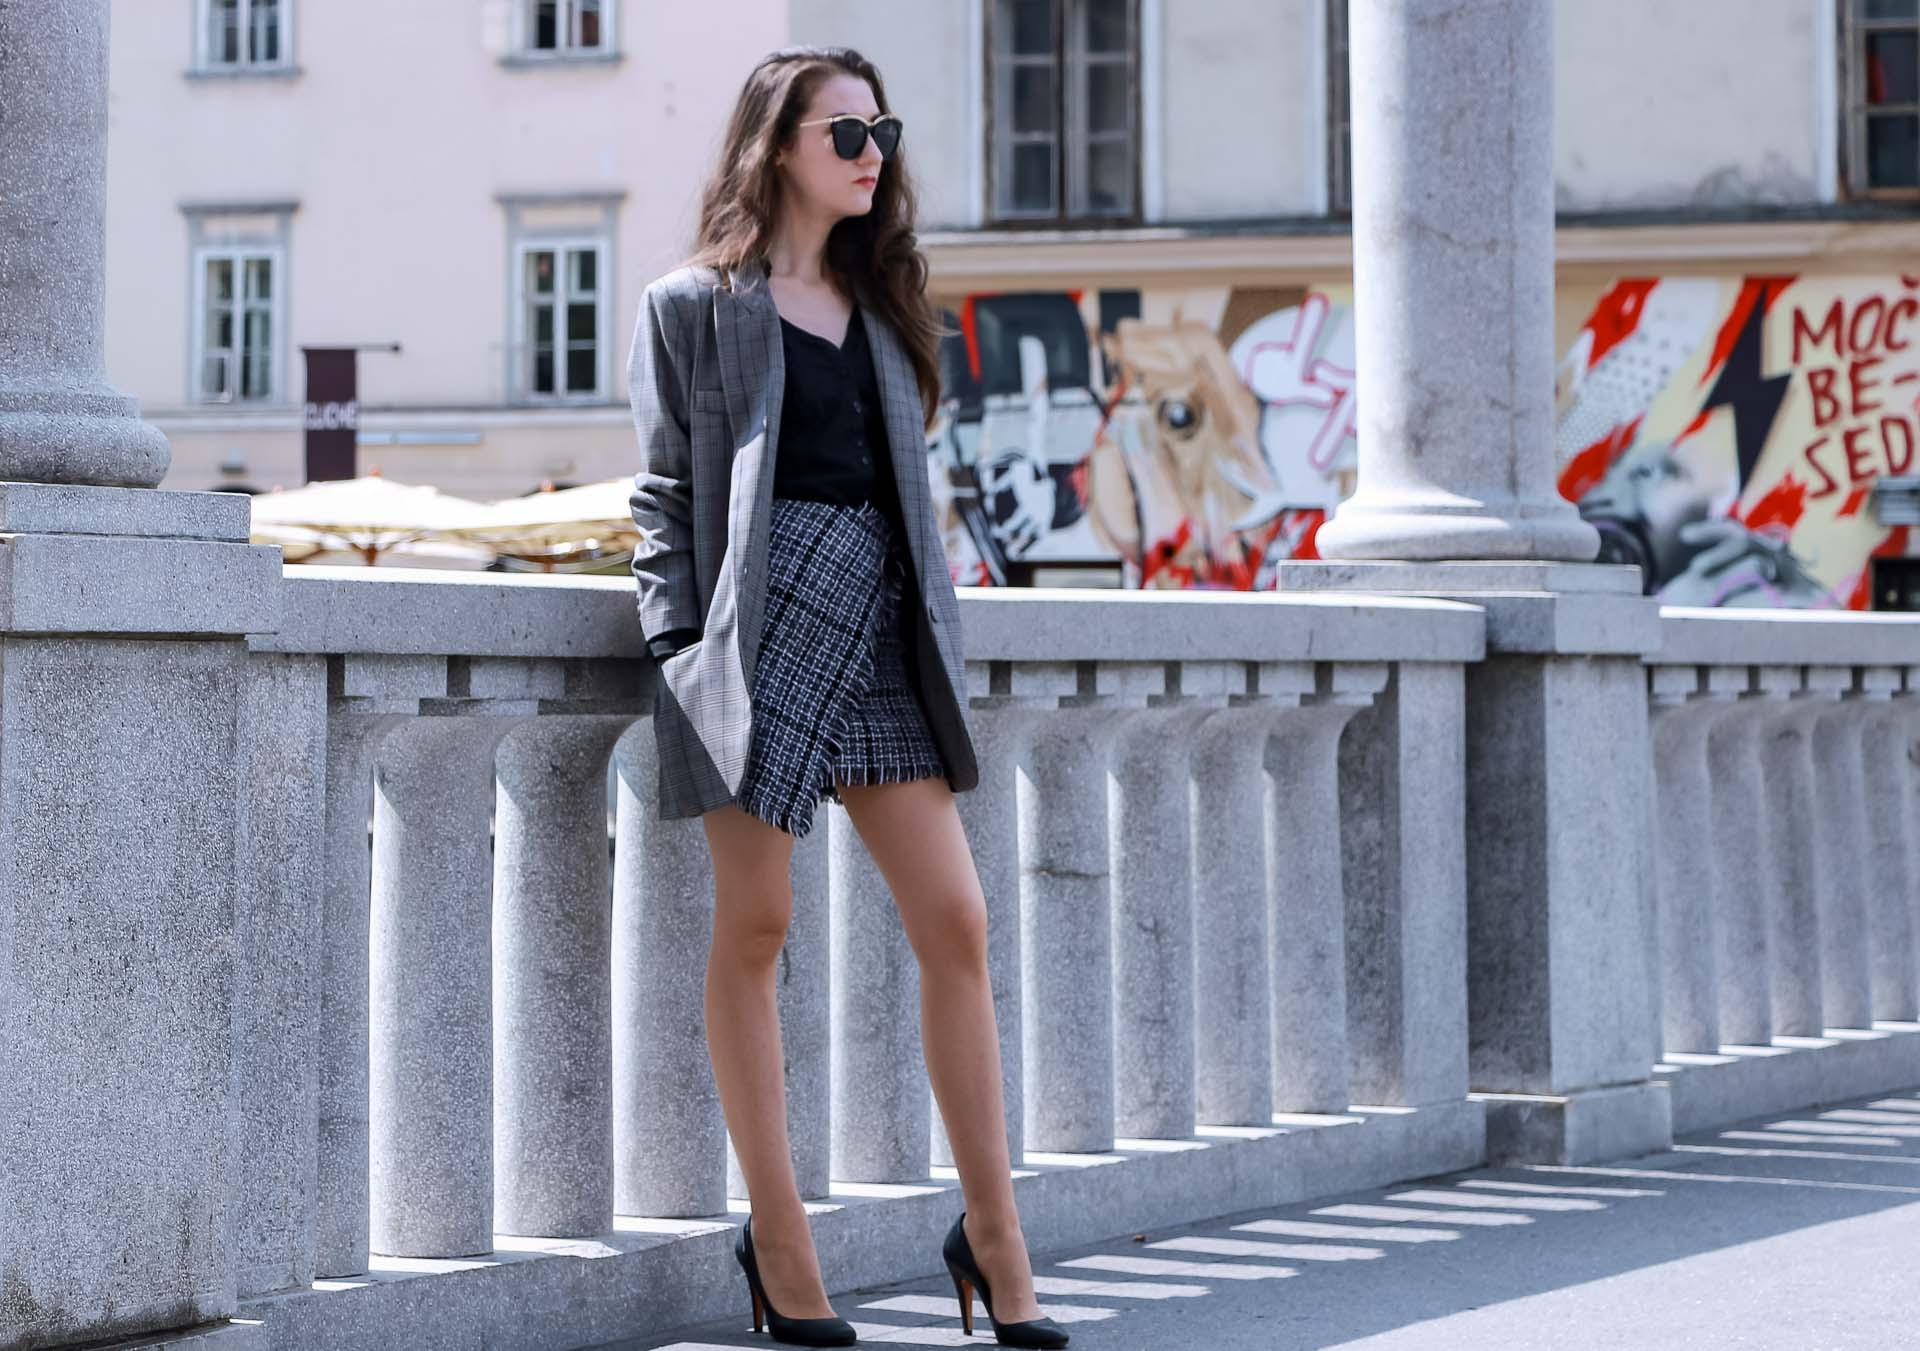 Fashion Blogger Veronika Lipar of Brunette from Wall Street wearing Erika Cavallini oversized boyfriend plaid blazer with short tweed black and white mini skirt from streets, black pumps and white chain strap shoulder bag while standing on the bridge in Ljubljana